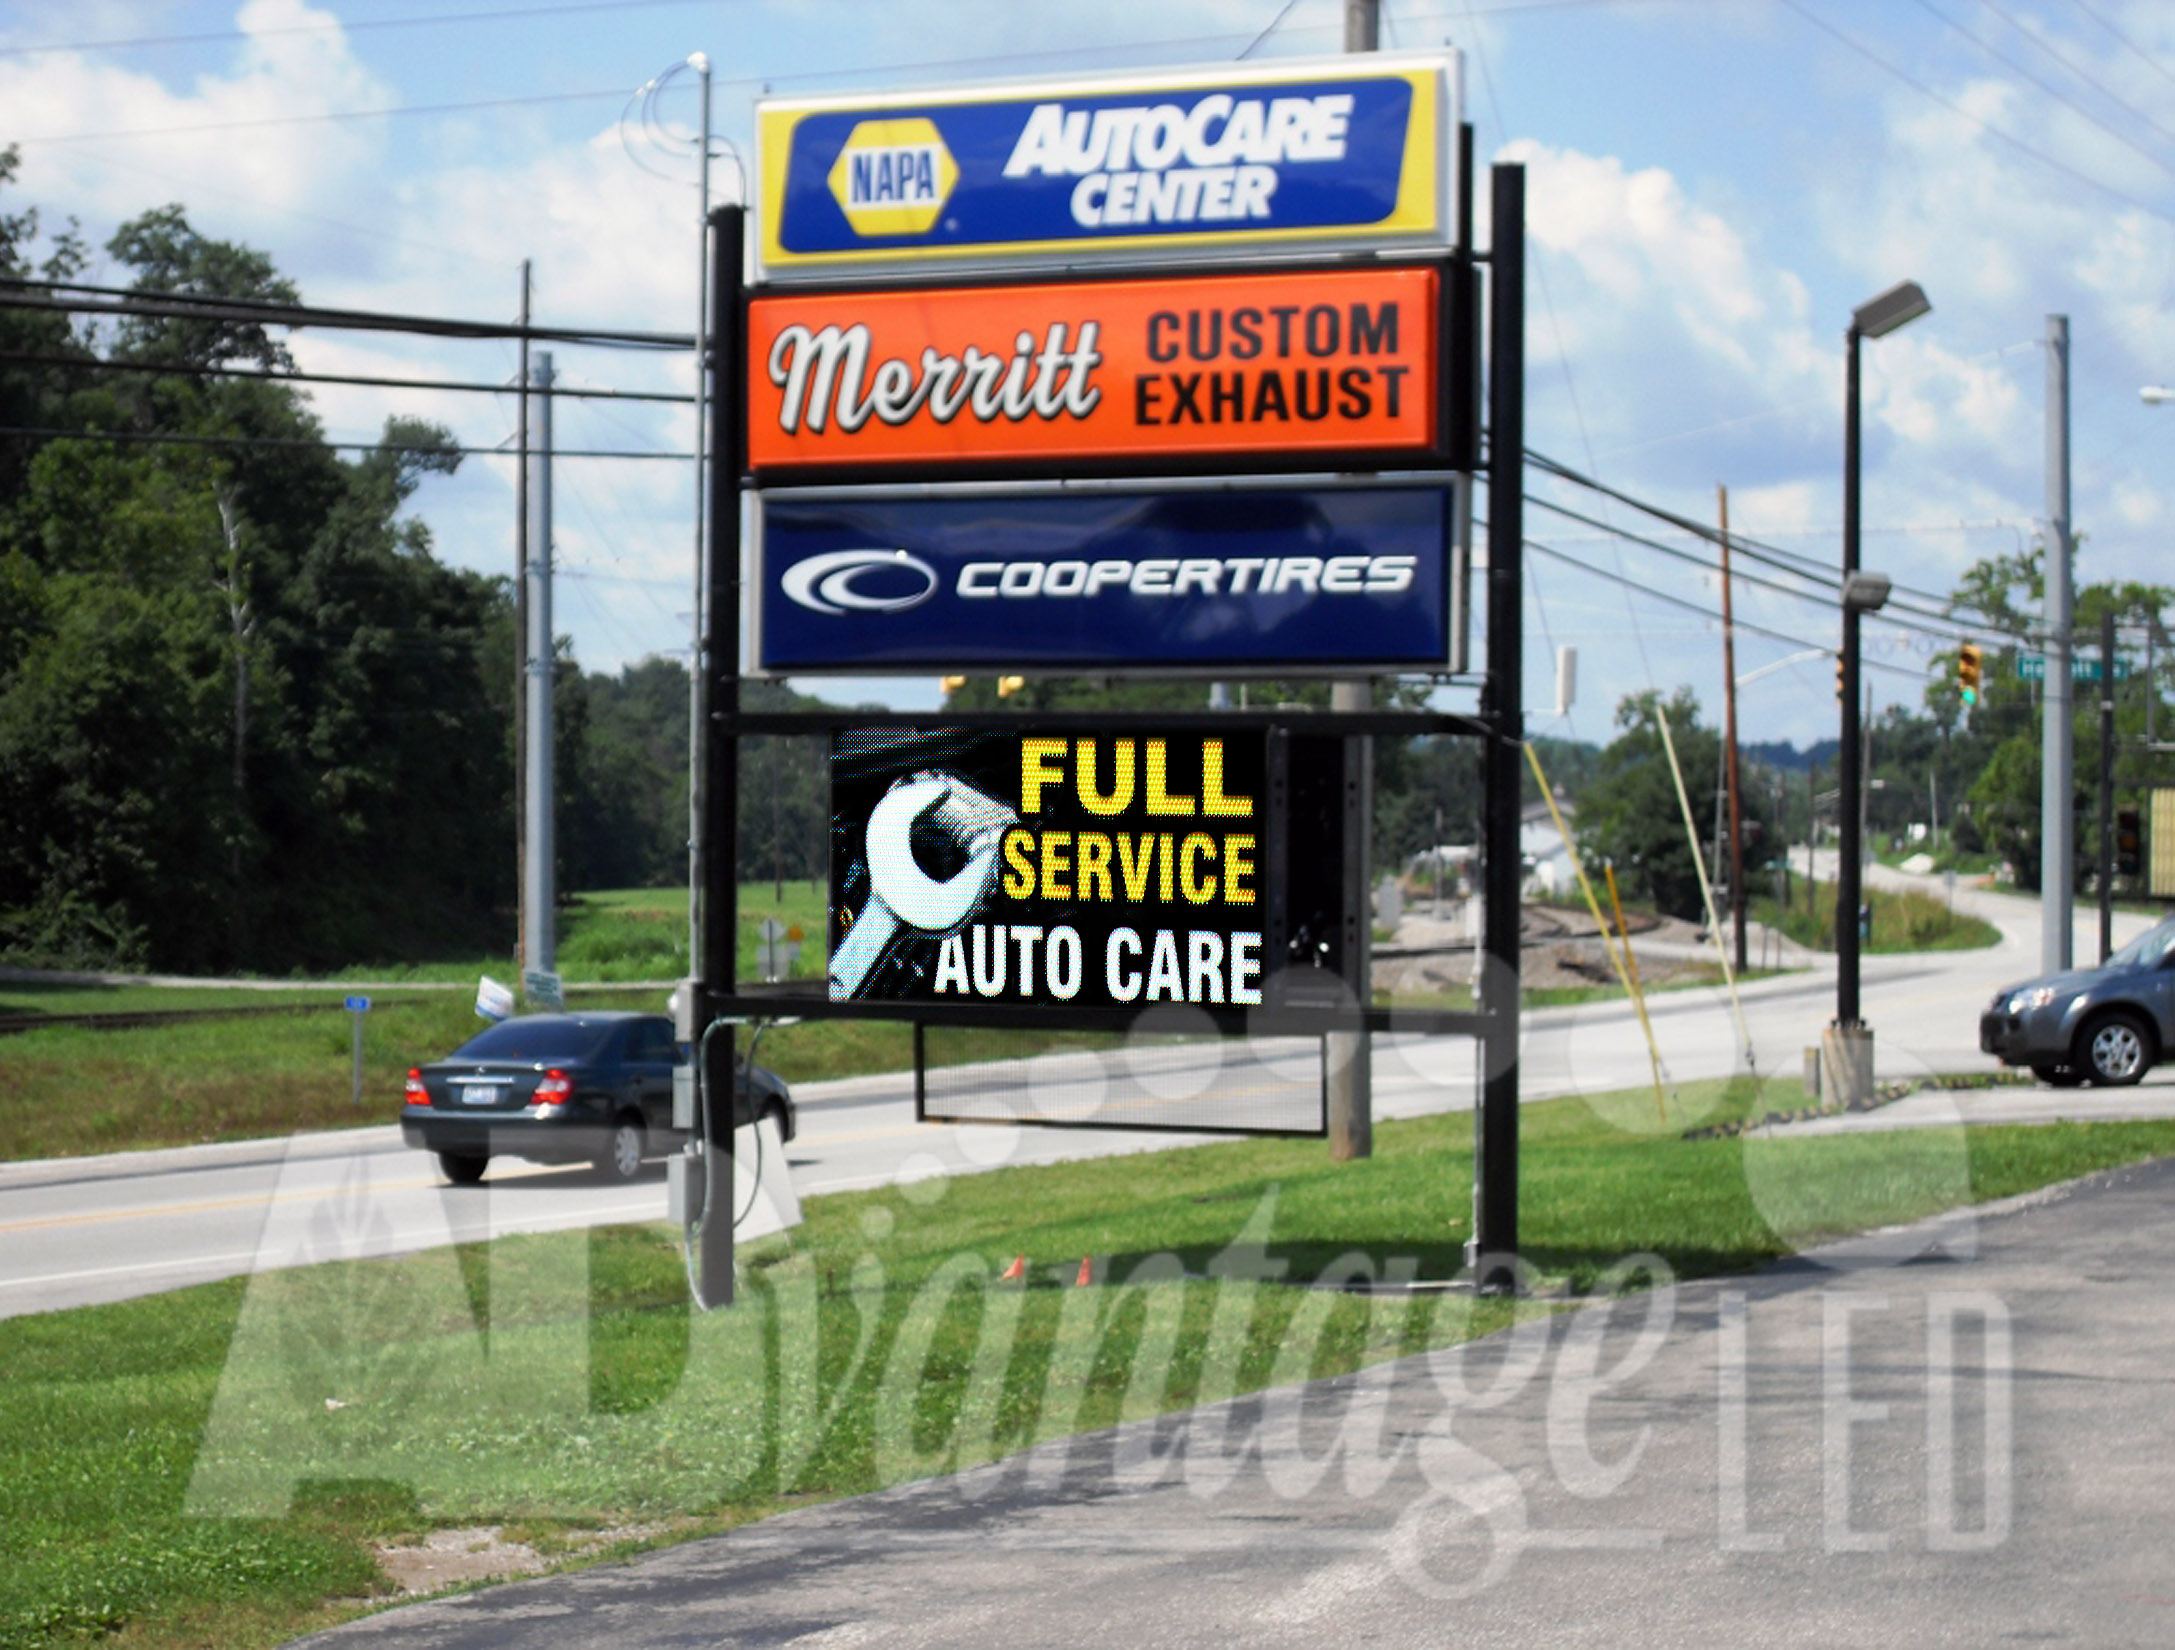 Advantage Led Signs Announces Completion Of The Merritt Auto Repair Led Sign